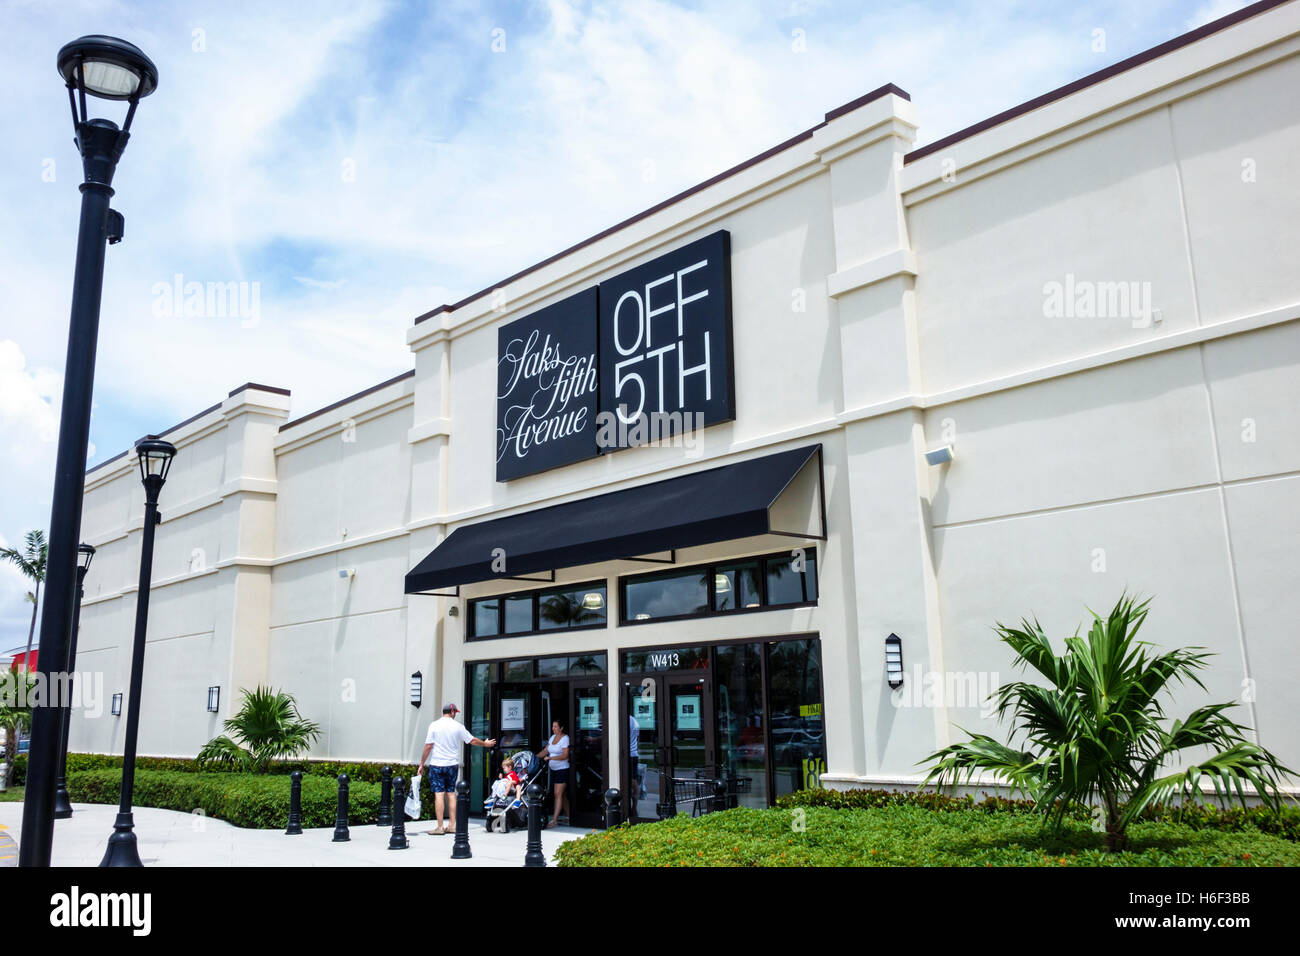 Palm Beach Florida Outlets Shopping Saks Fifth Avenue Off Th Front Entrance